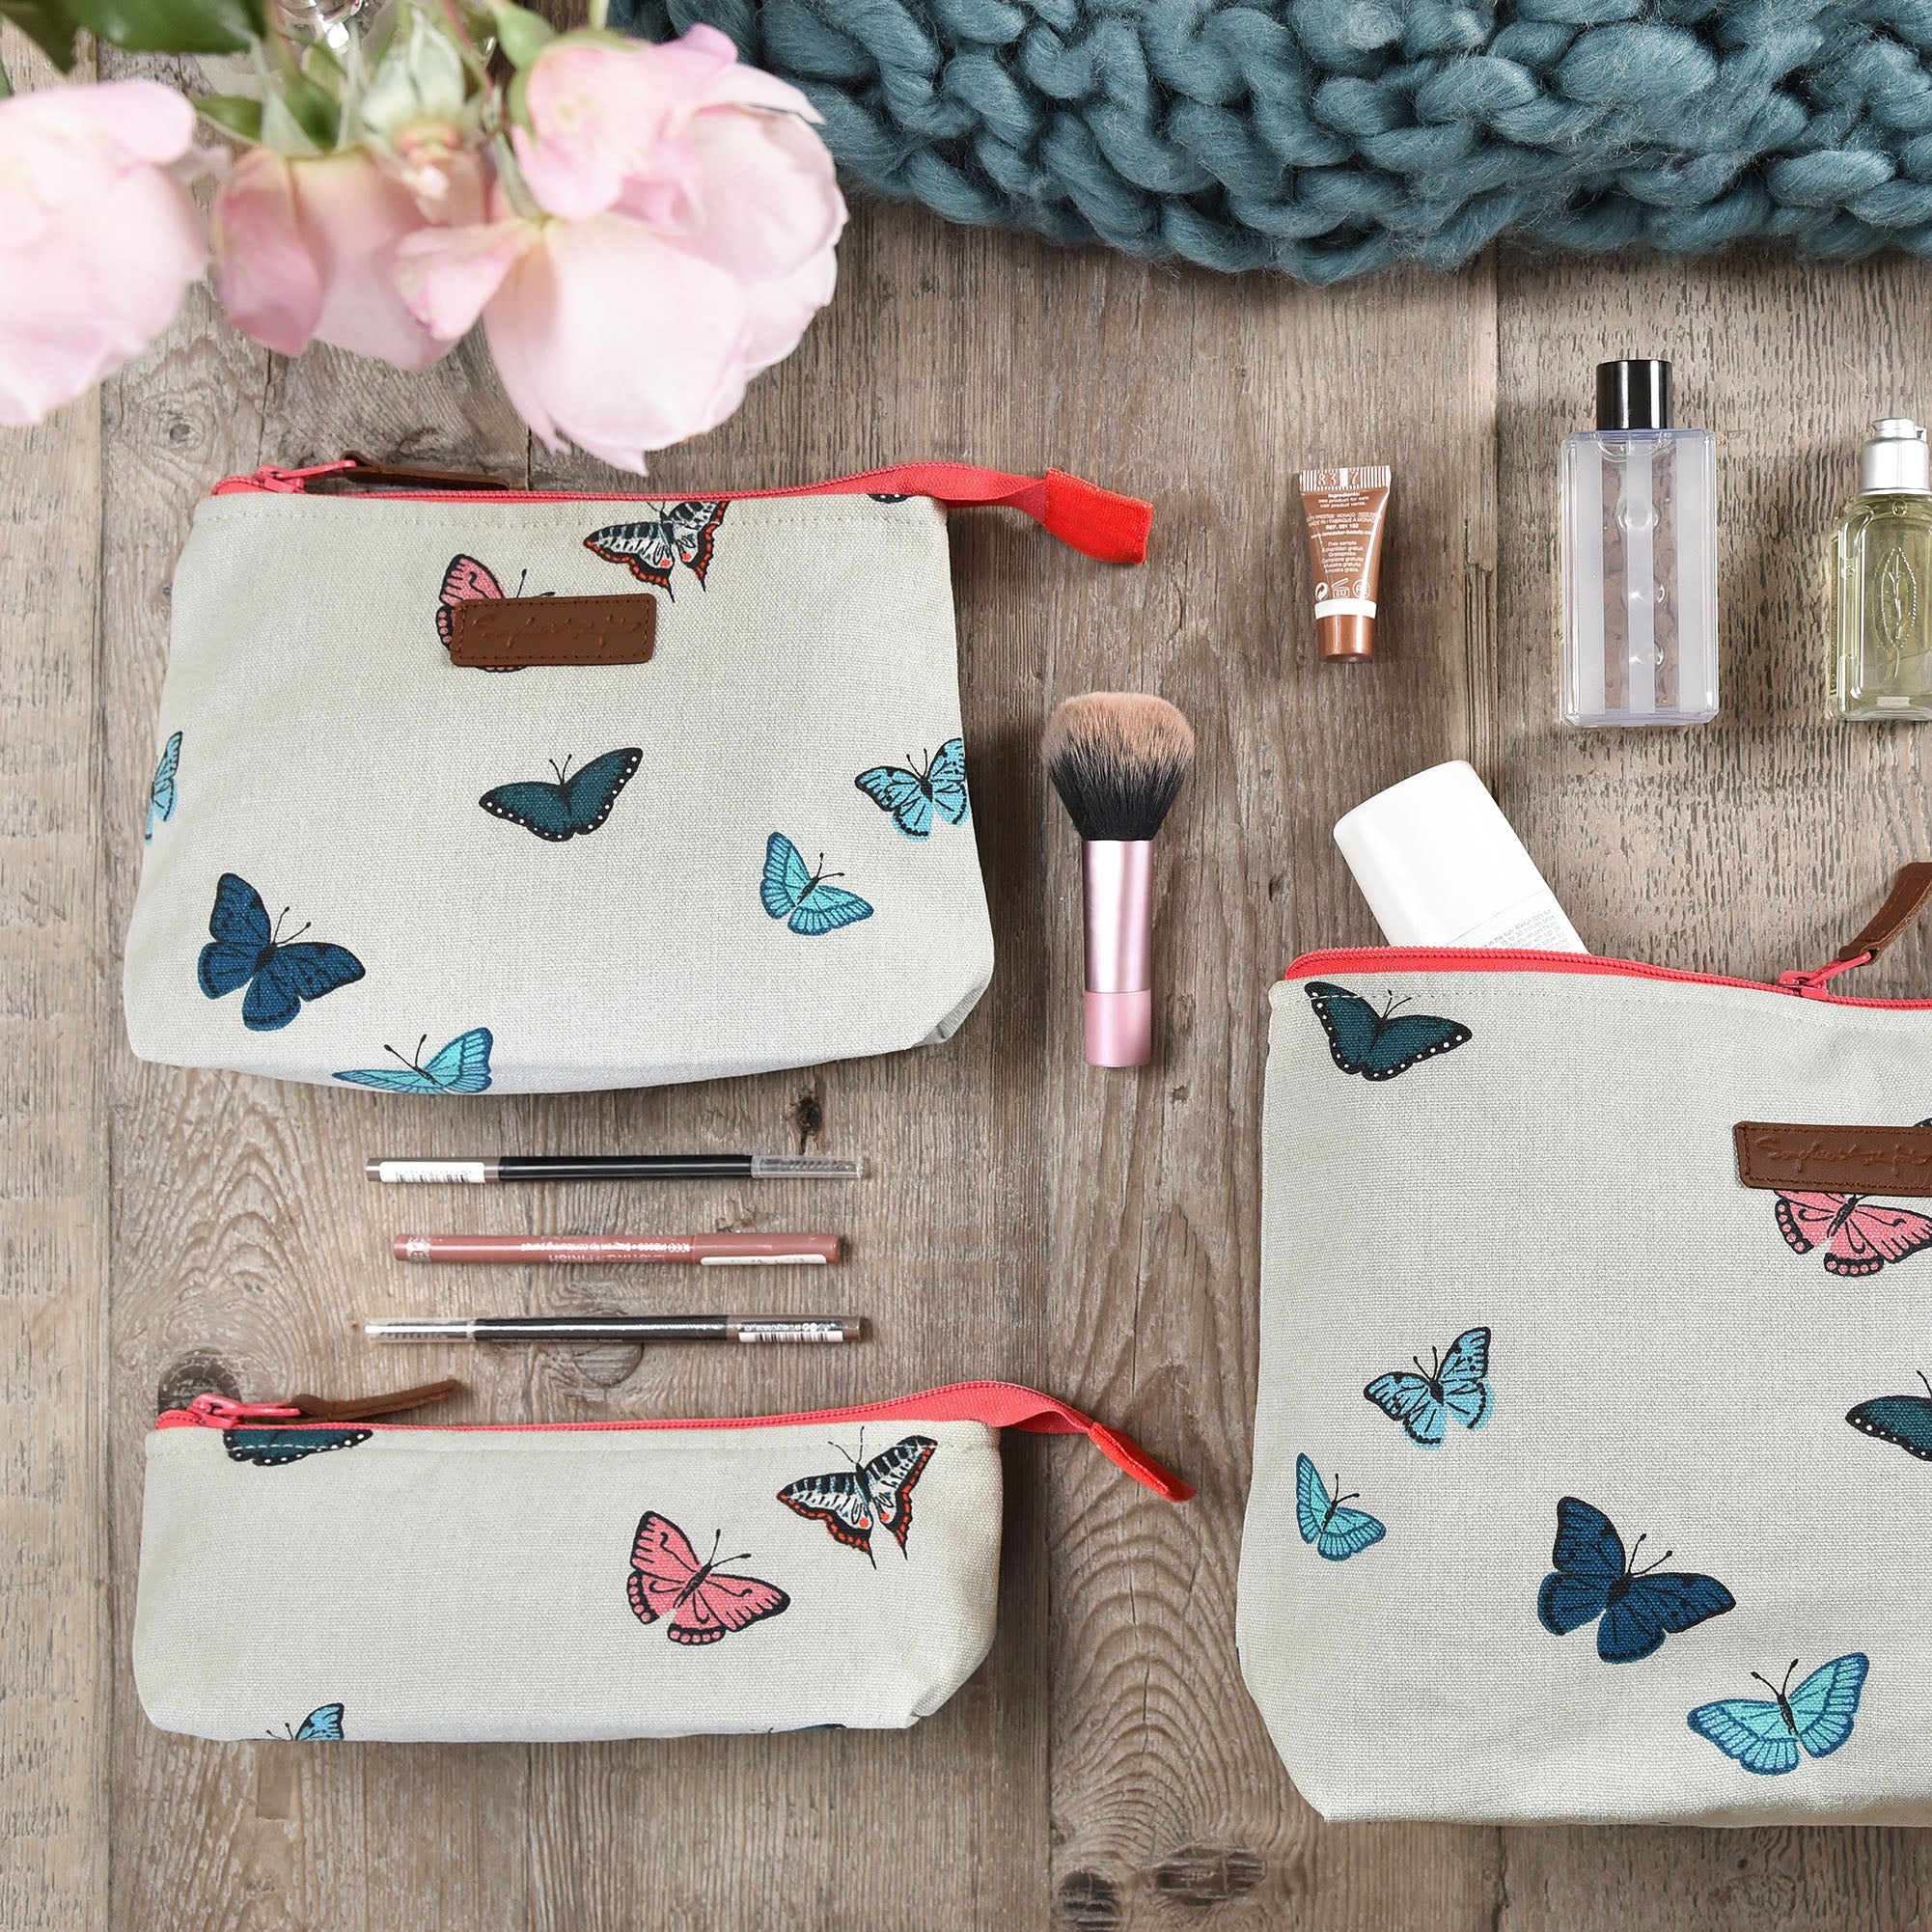 Makeup bag by Sophie Allport covered in colourful butterflies